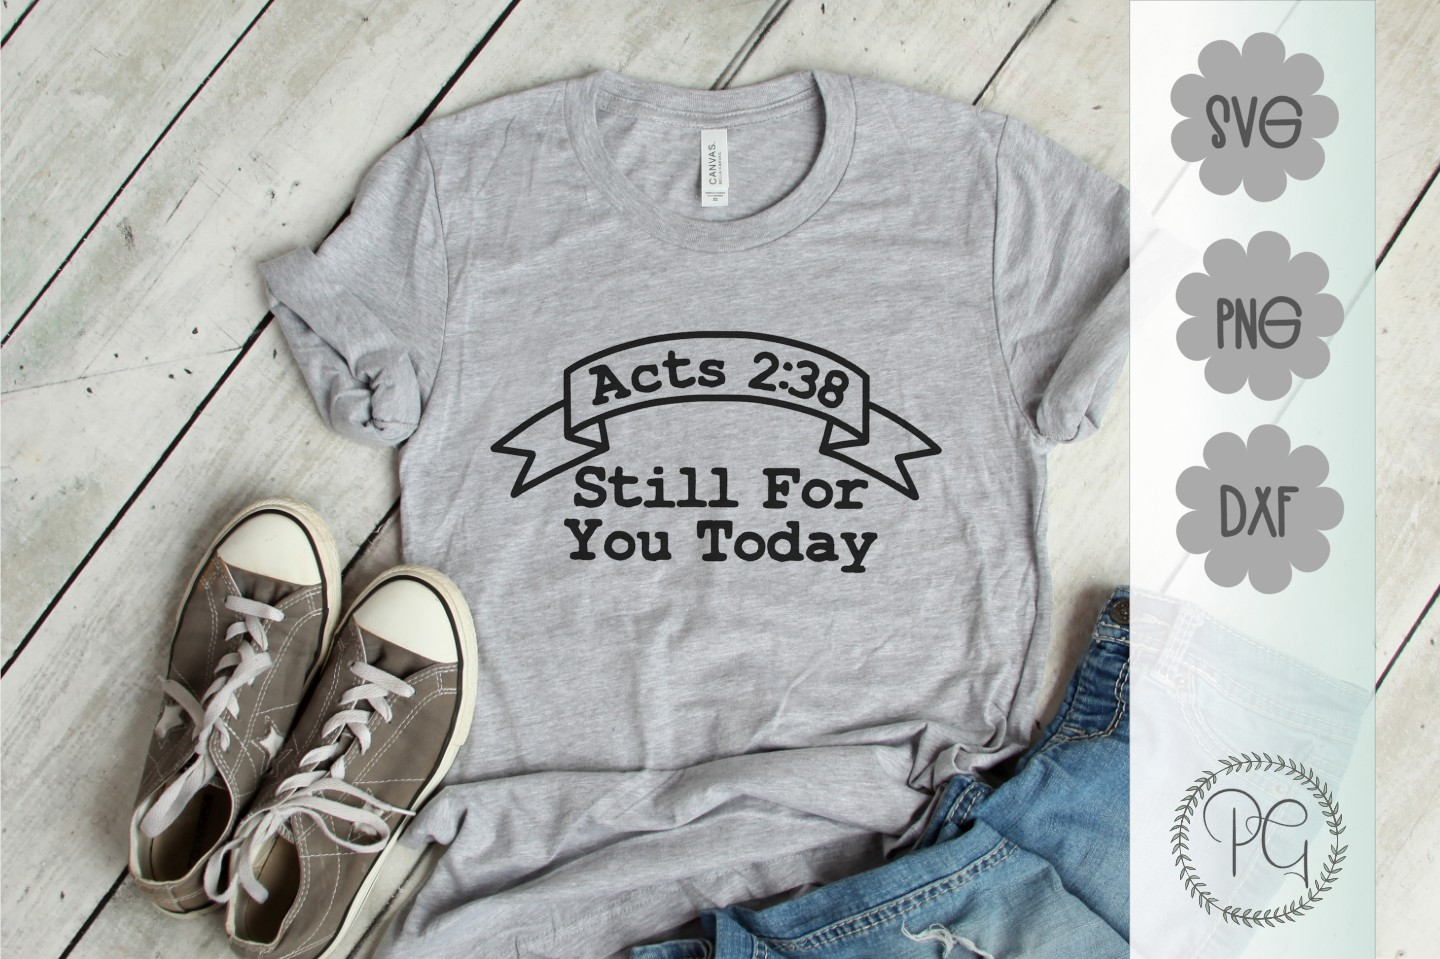 Acts 238 Still For You Today SVG DXF PNG example image 1